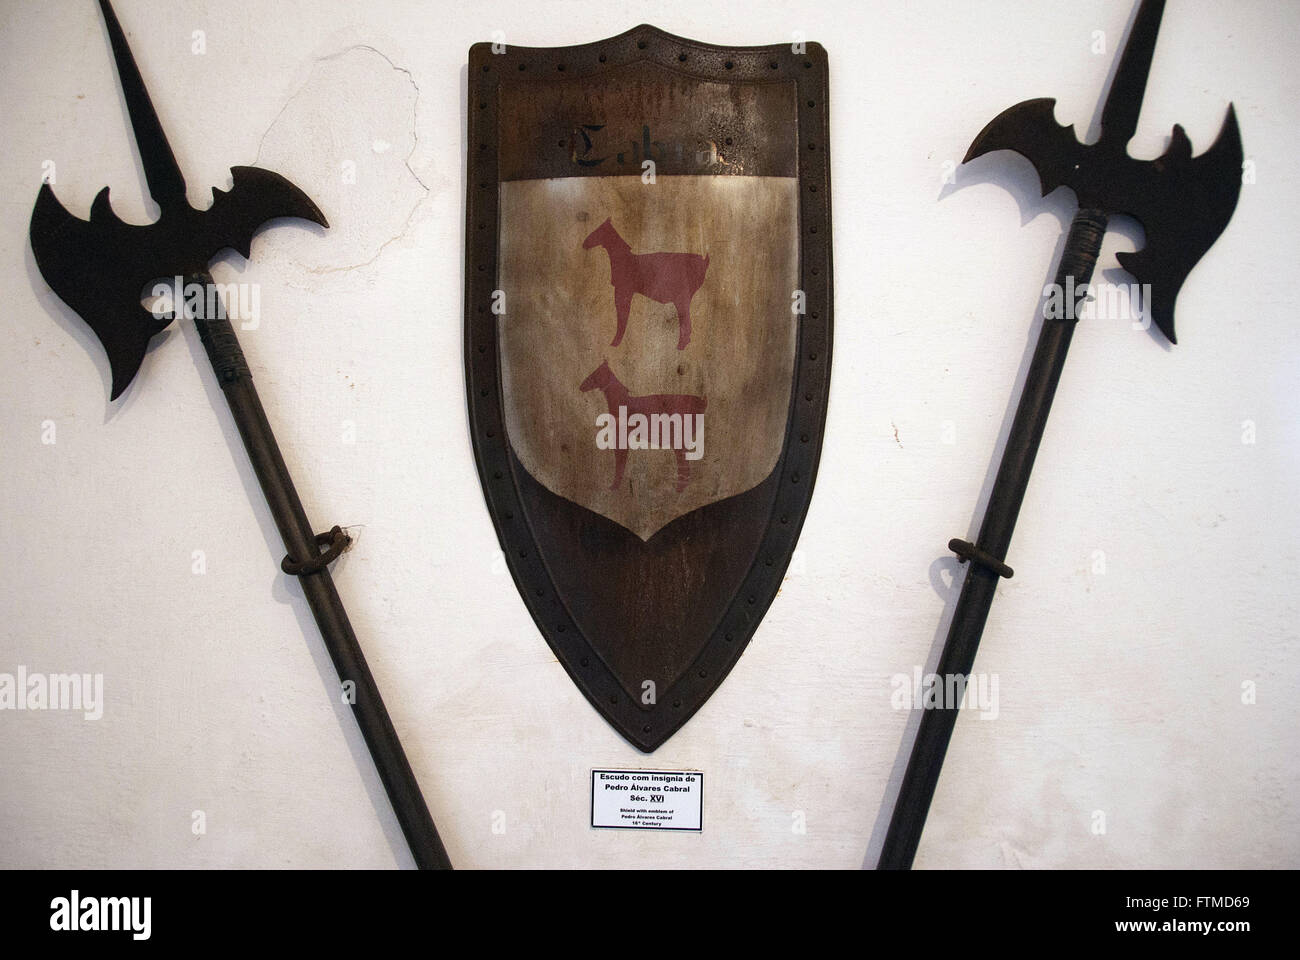 Weapons and shield insignia with Pedro Alvares Cabral in Forte Sao Joao - Stock Image